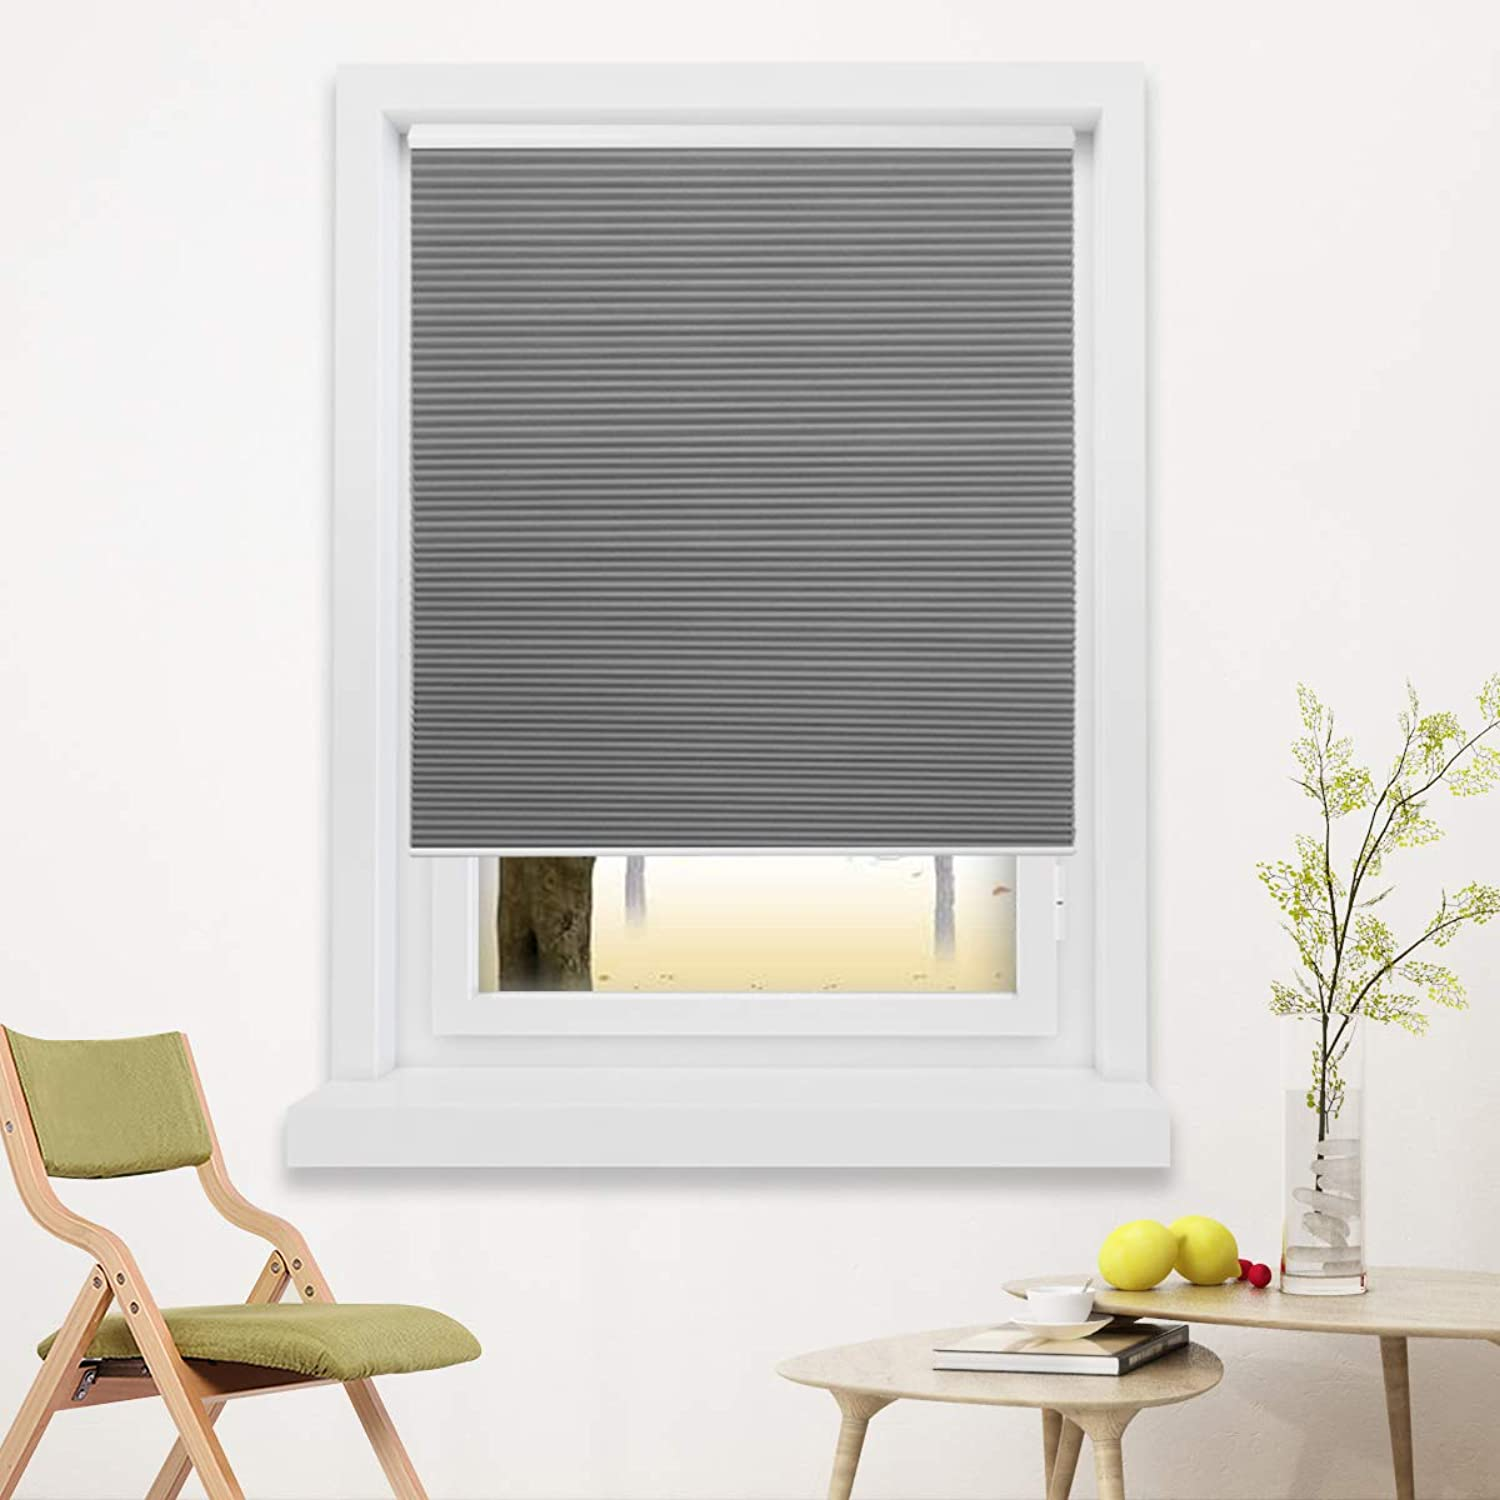 27x64 inch Blackout Cellular Blinds Cordless Shade Honeycomb Shades Window Fabric Blinds Grey-White